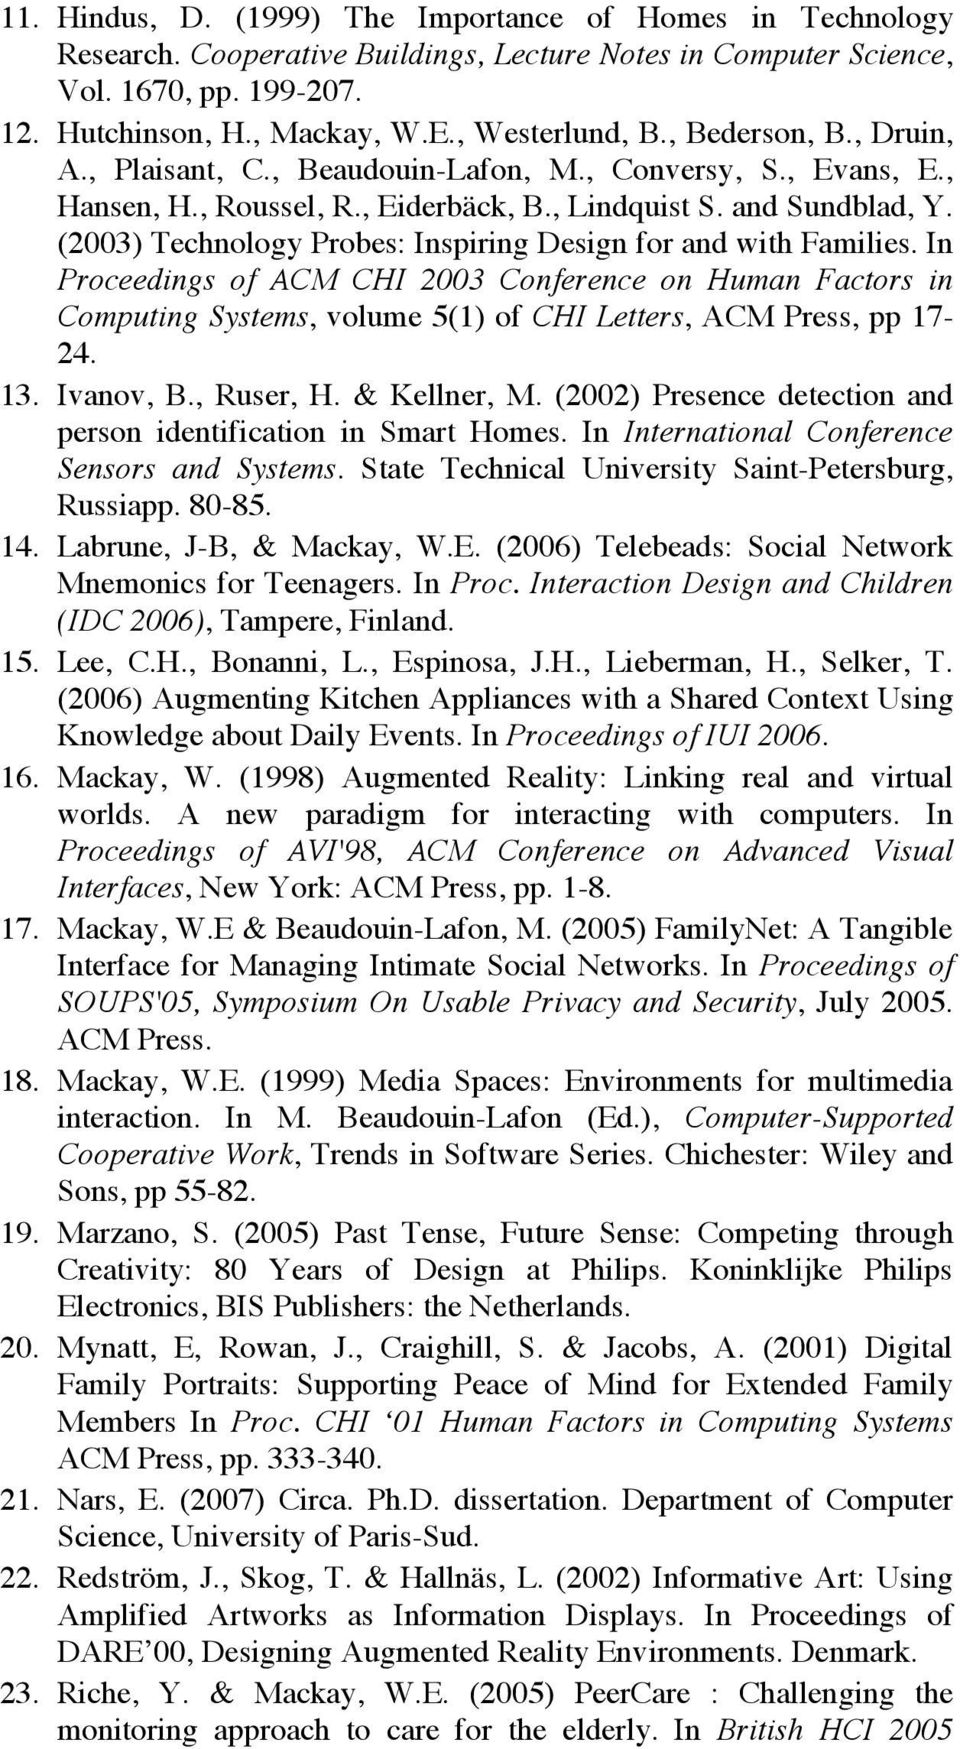 (2003) Technology Probes: Inspiring Design for and with Families. In Proceedings of ACM CHI 2003 Conference on Human Factors in Computing Systems, volume 5(1) of CHI Letters, ACM Press, pp 17-24. 13.